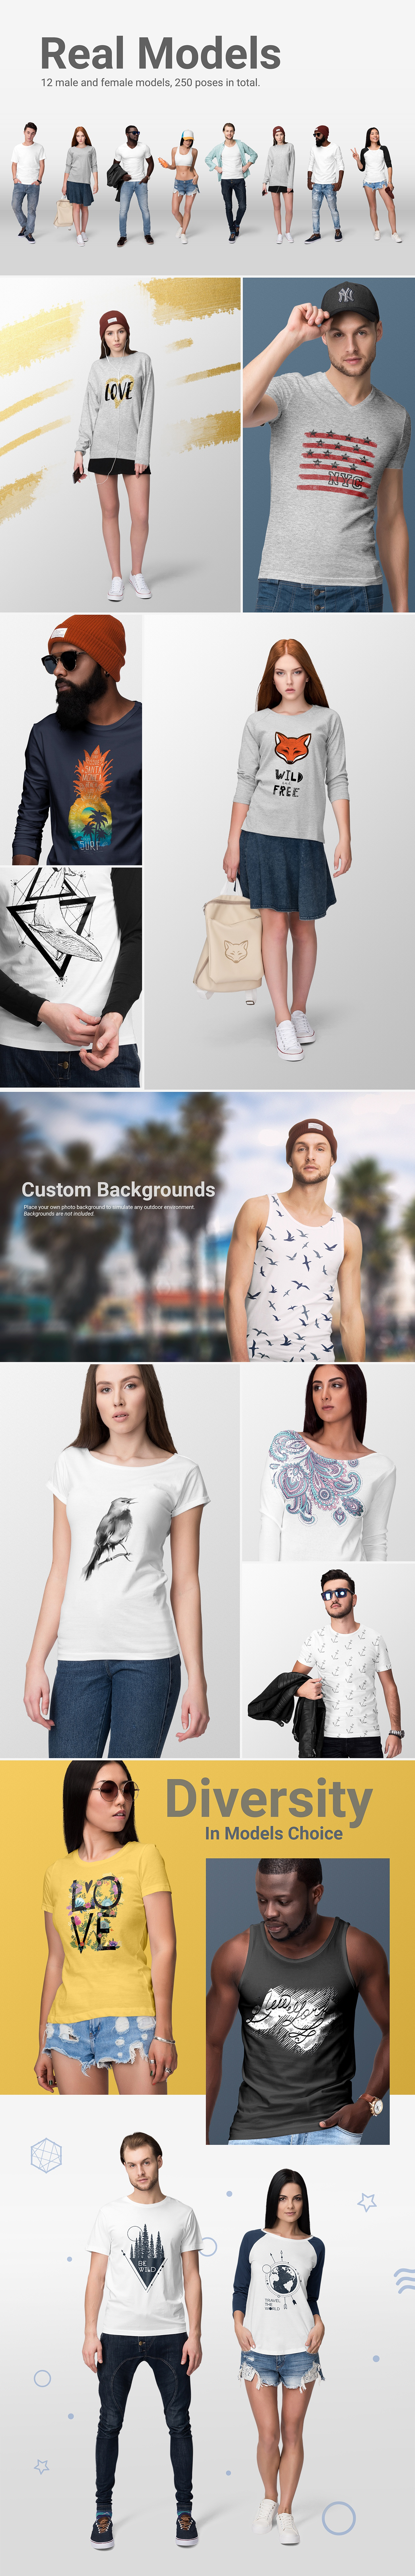 03 ultimate apparel mockup collection